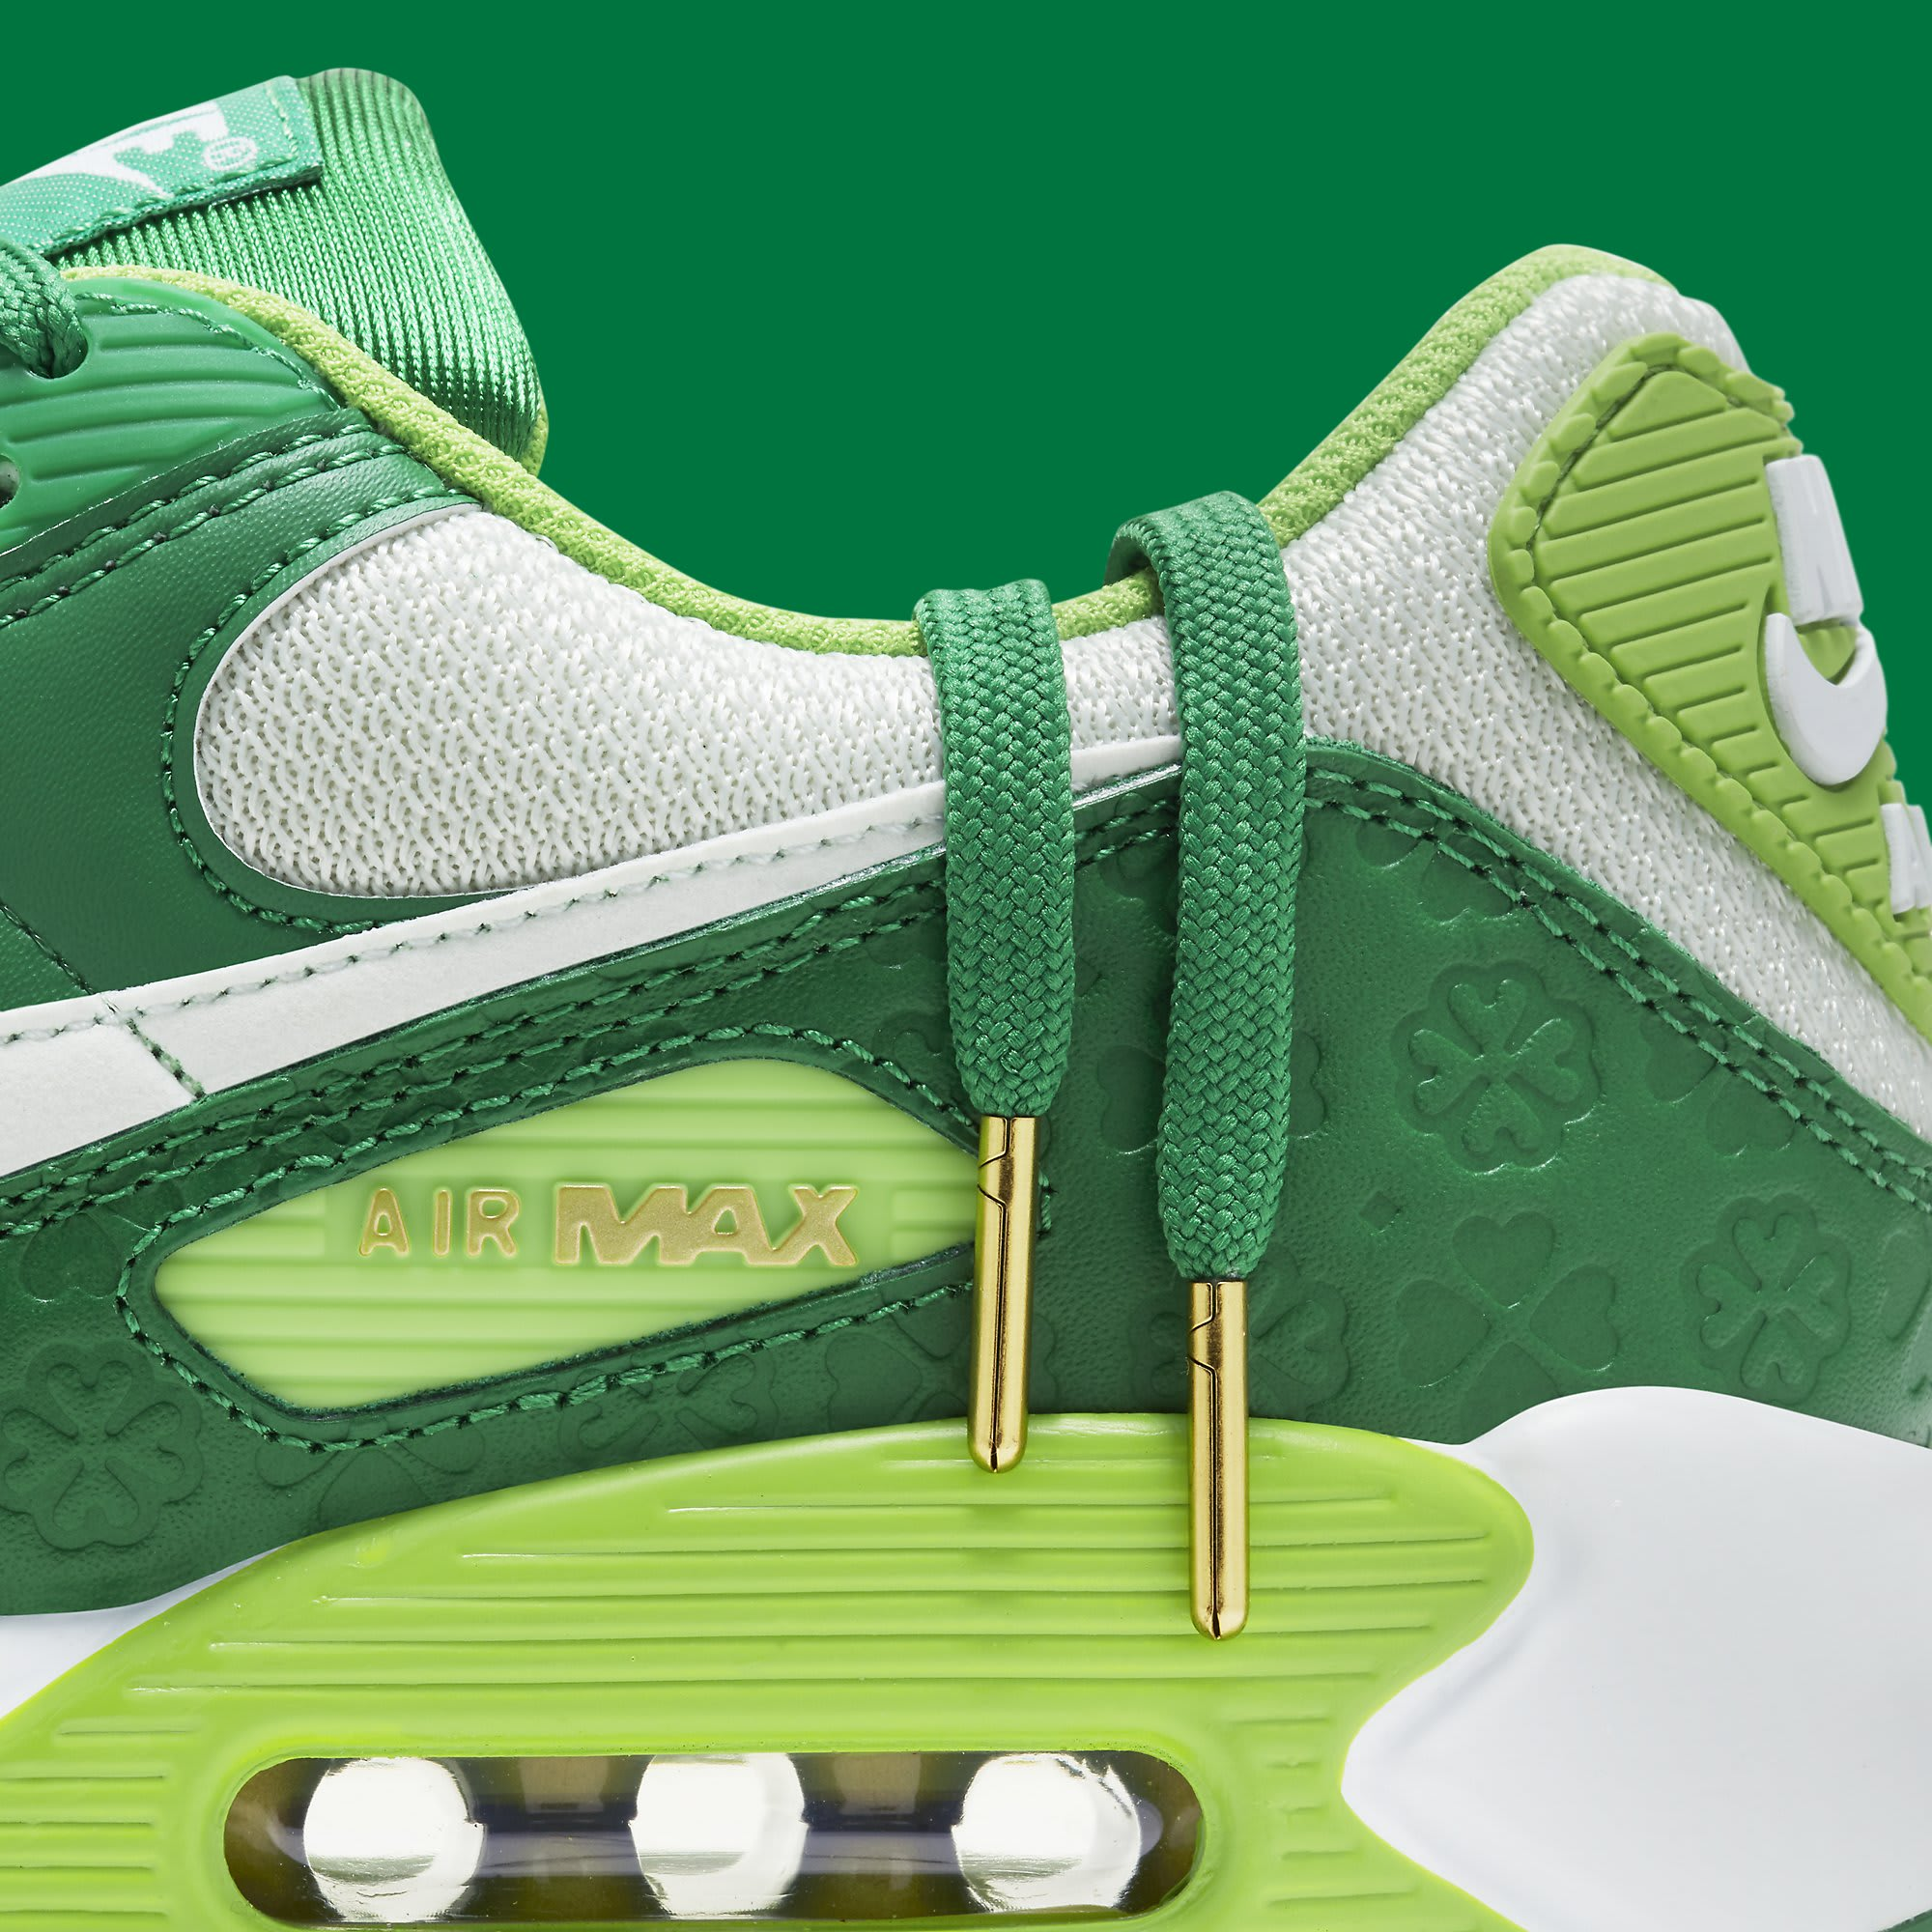 Nike Air Max 90 St. Patrick's Day Release Date DD8555-300 Lace Detail